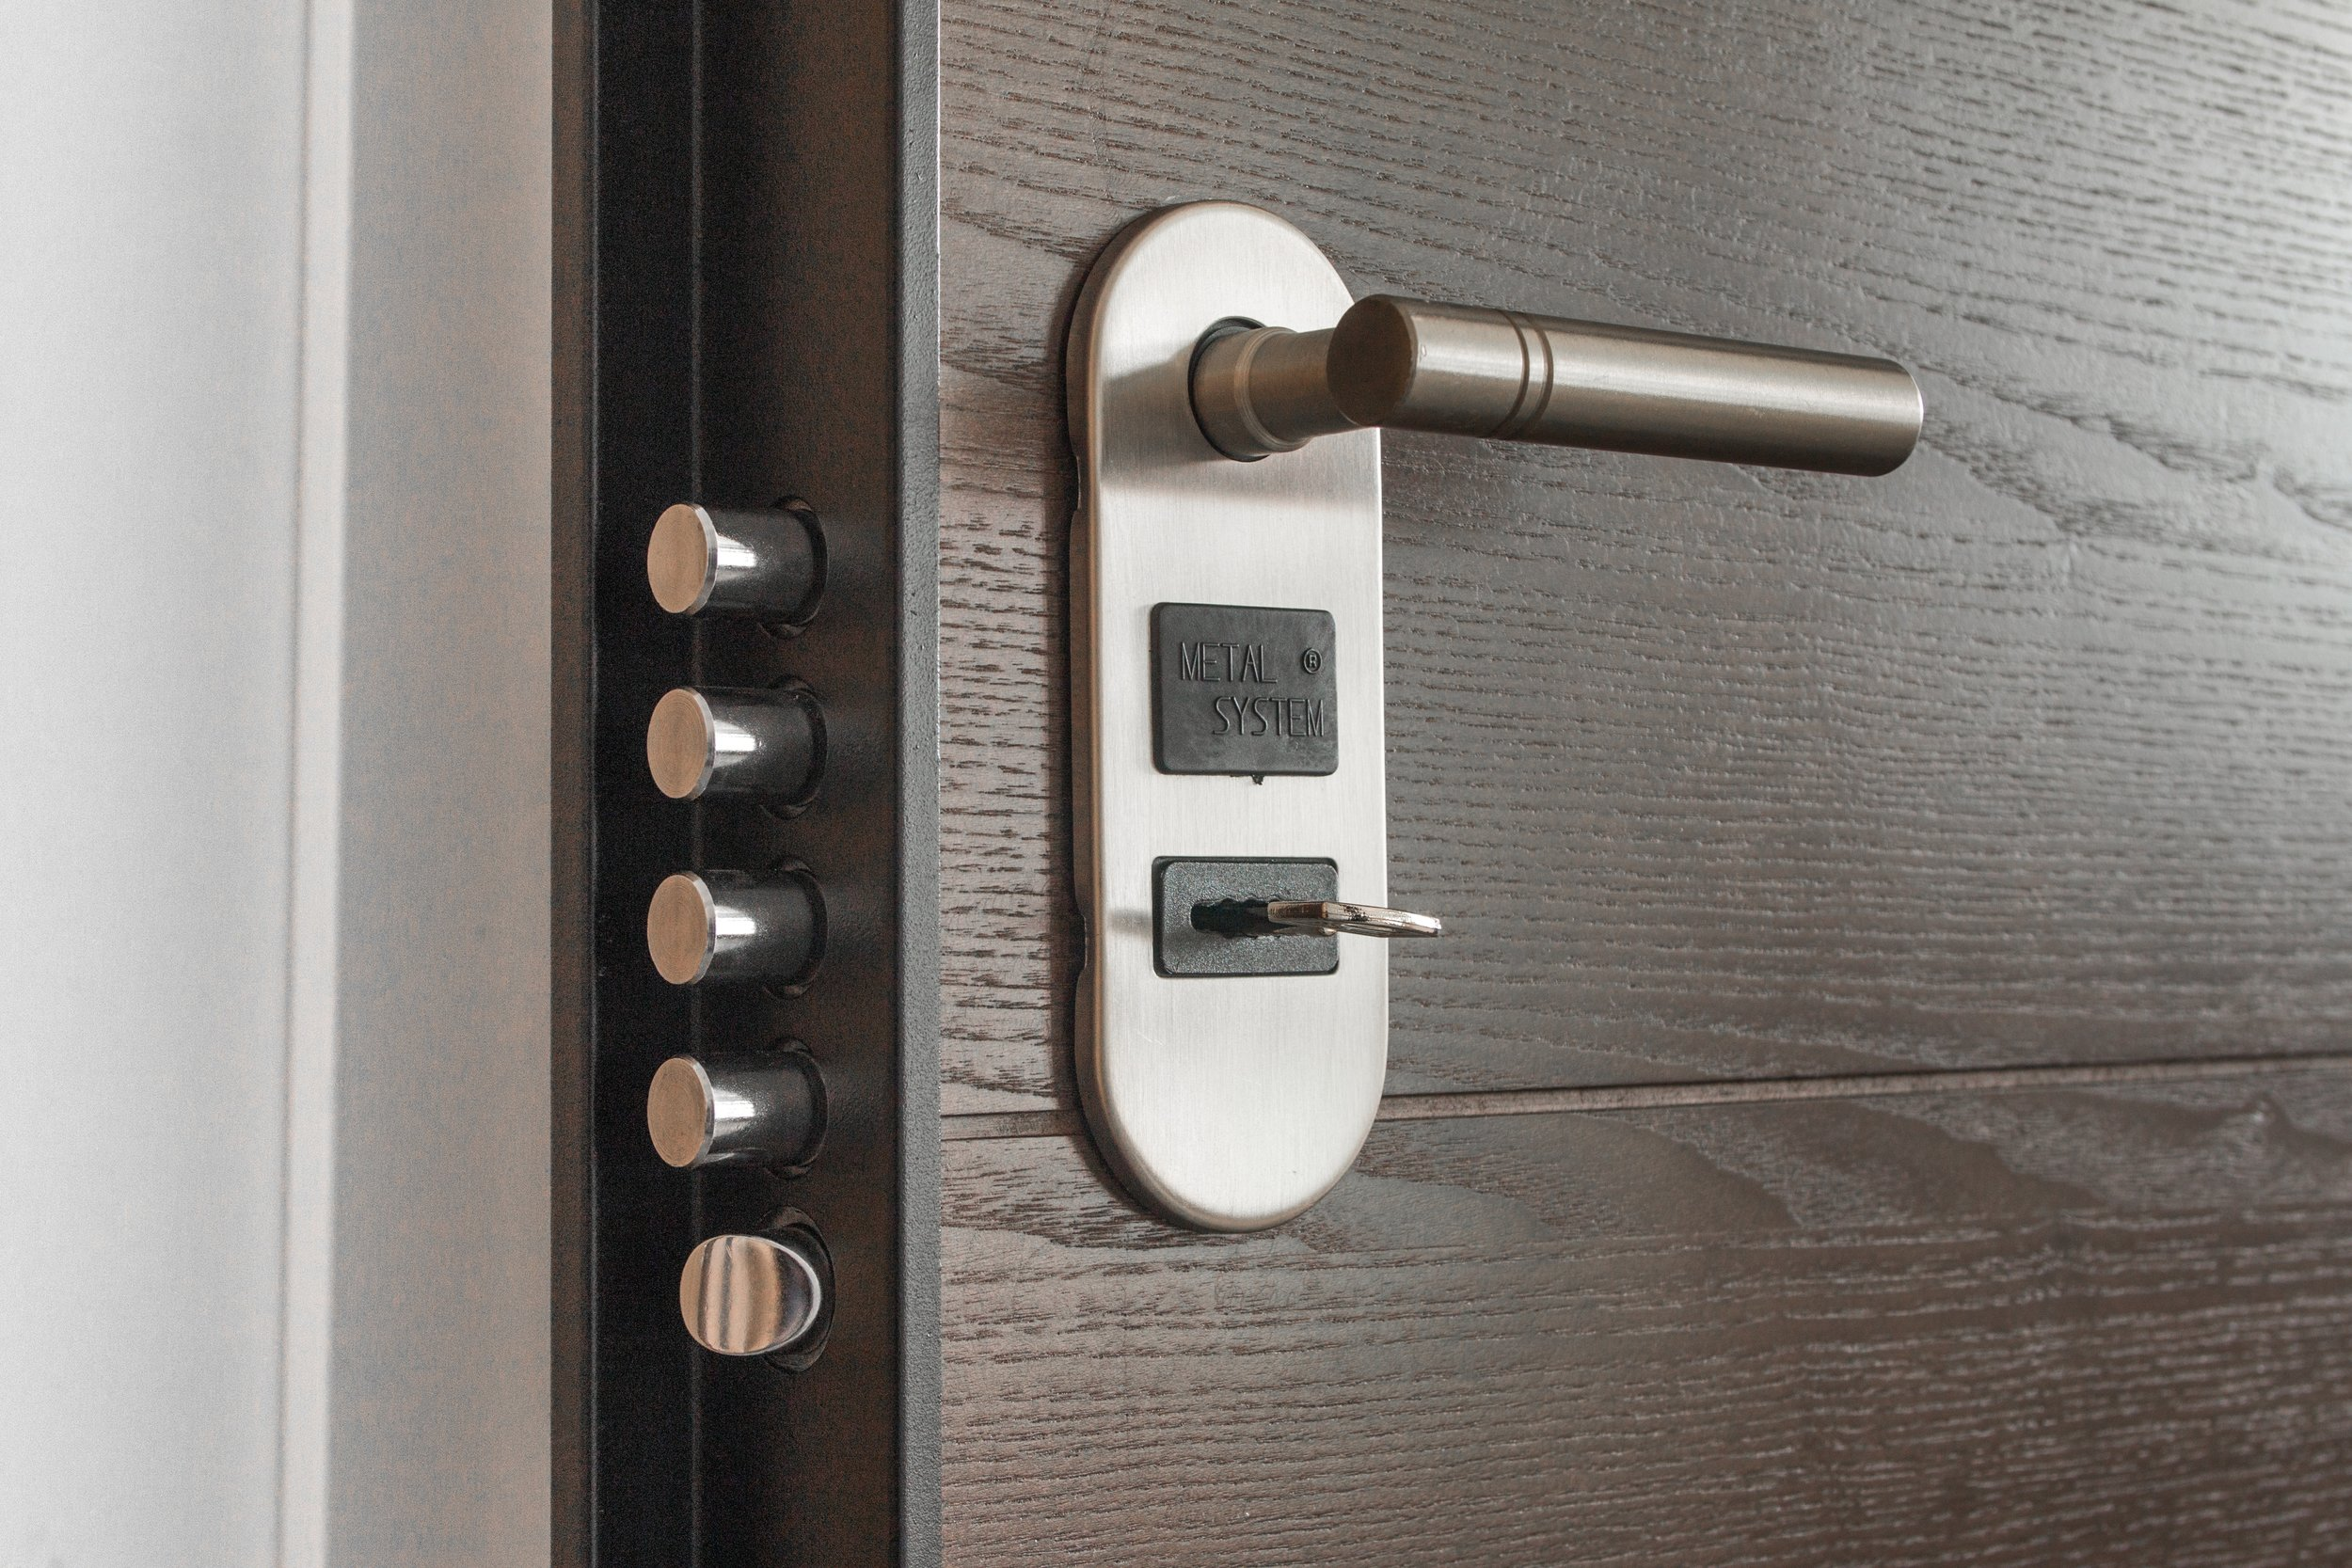 door-handle-key-security